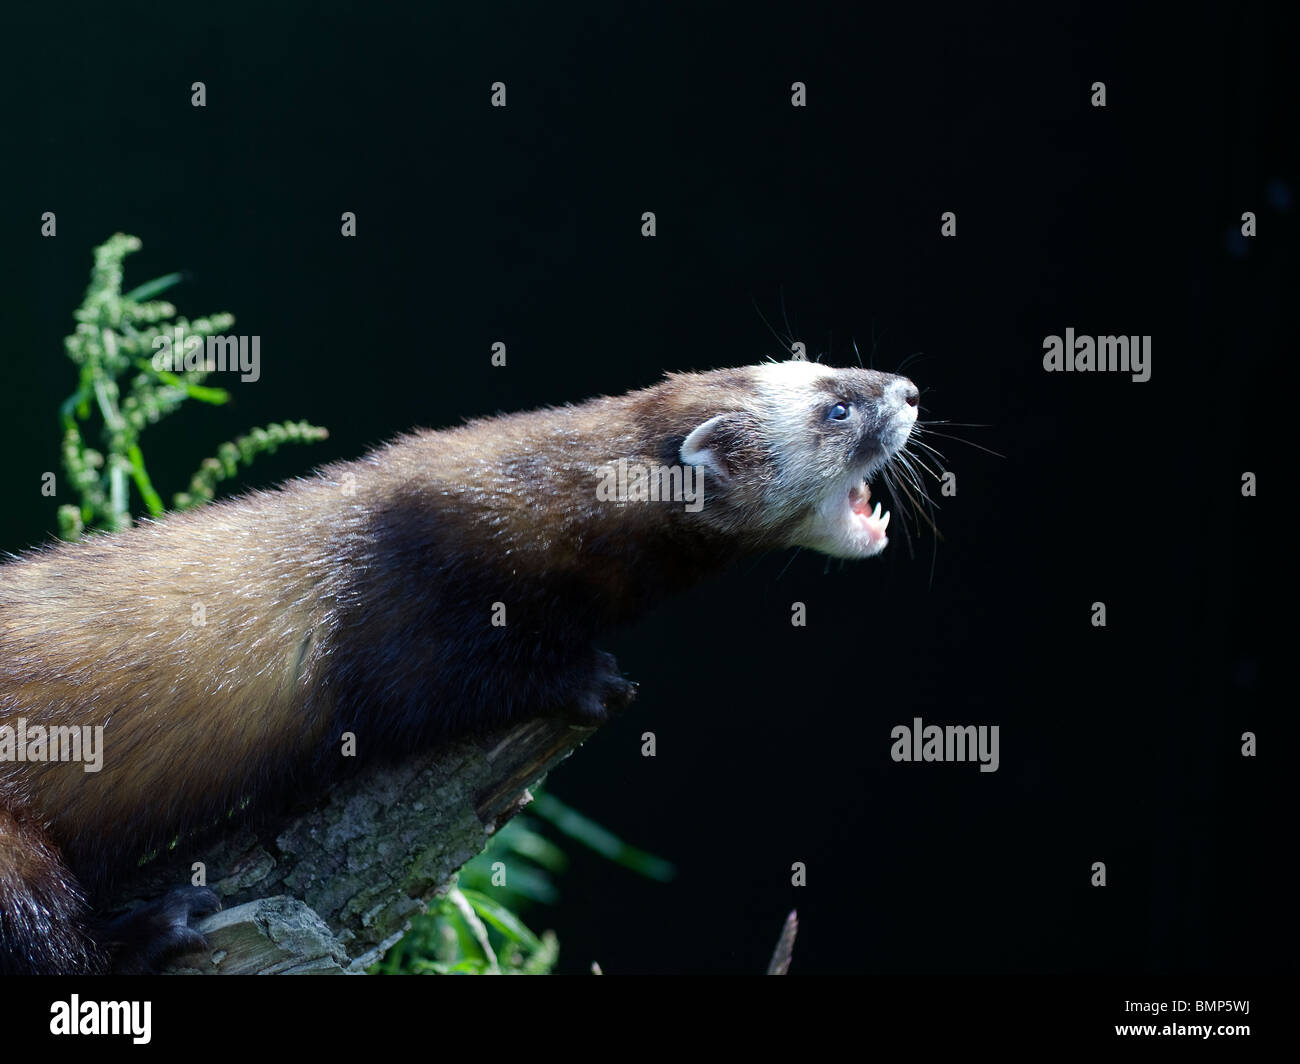 Polecat (Mustela putorius) profile and headshot baring teeth against a dark background taken under controlled conditions - Stock Image